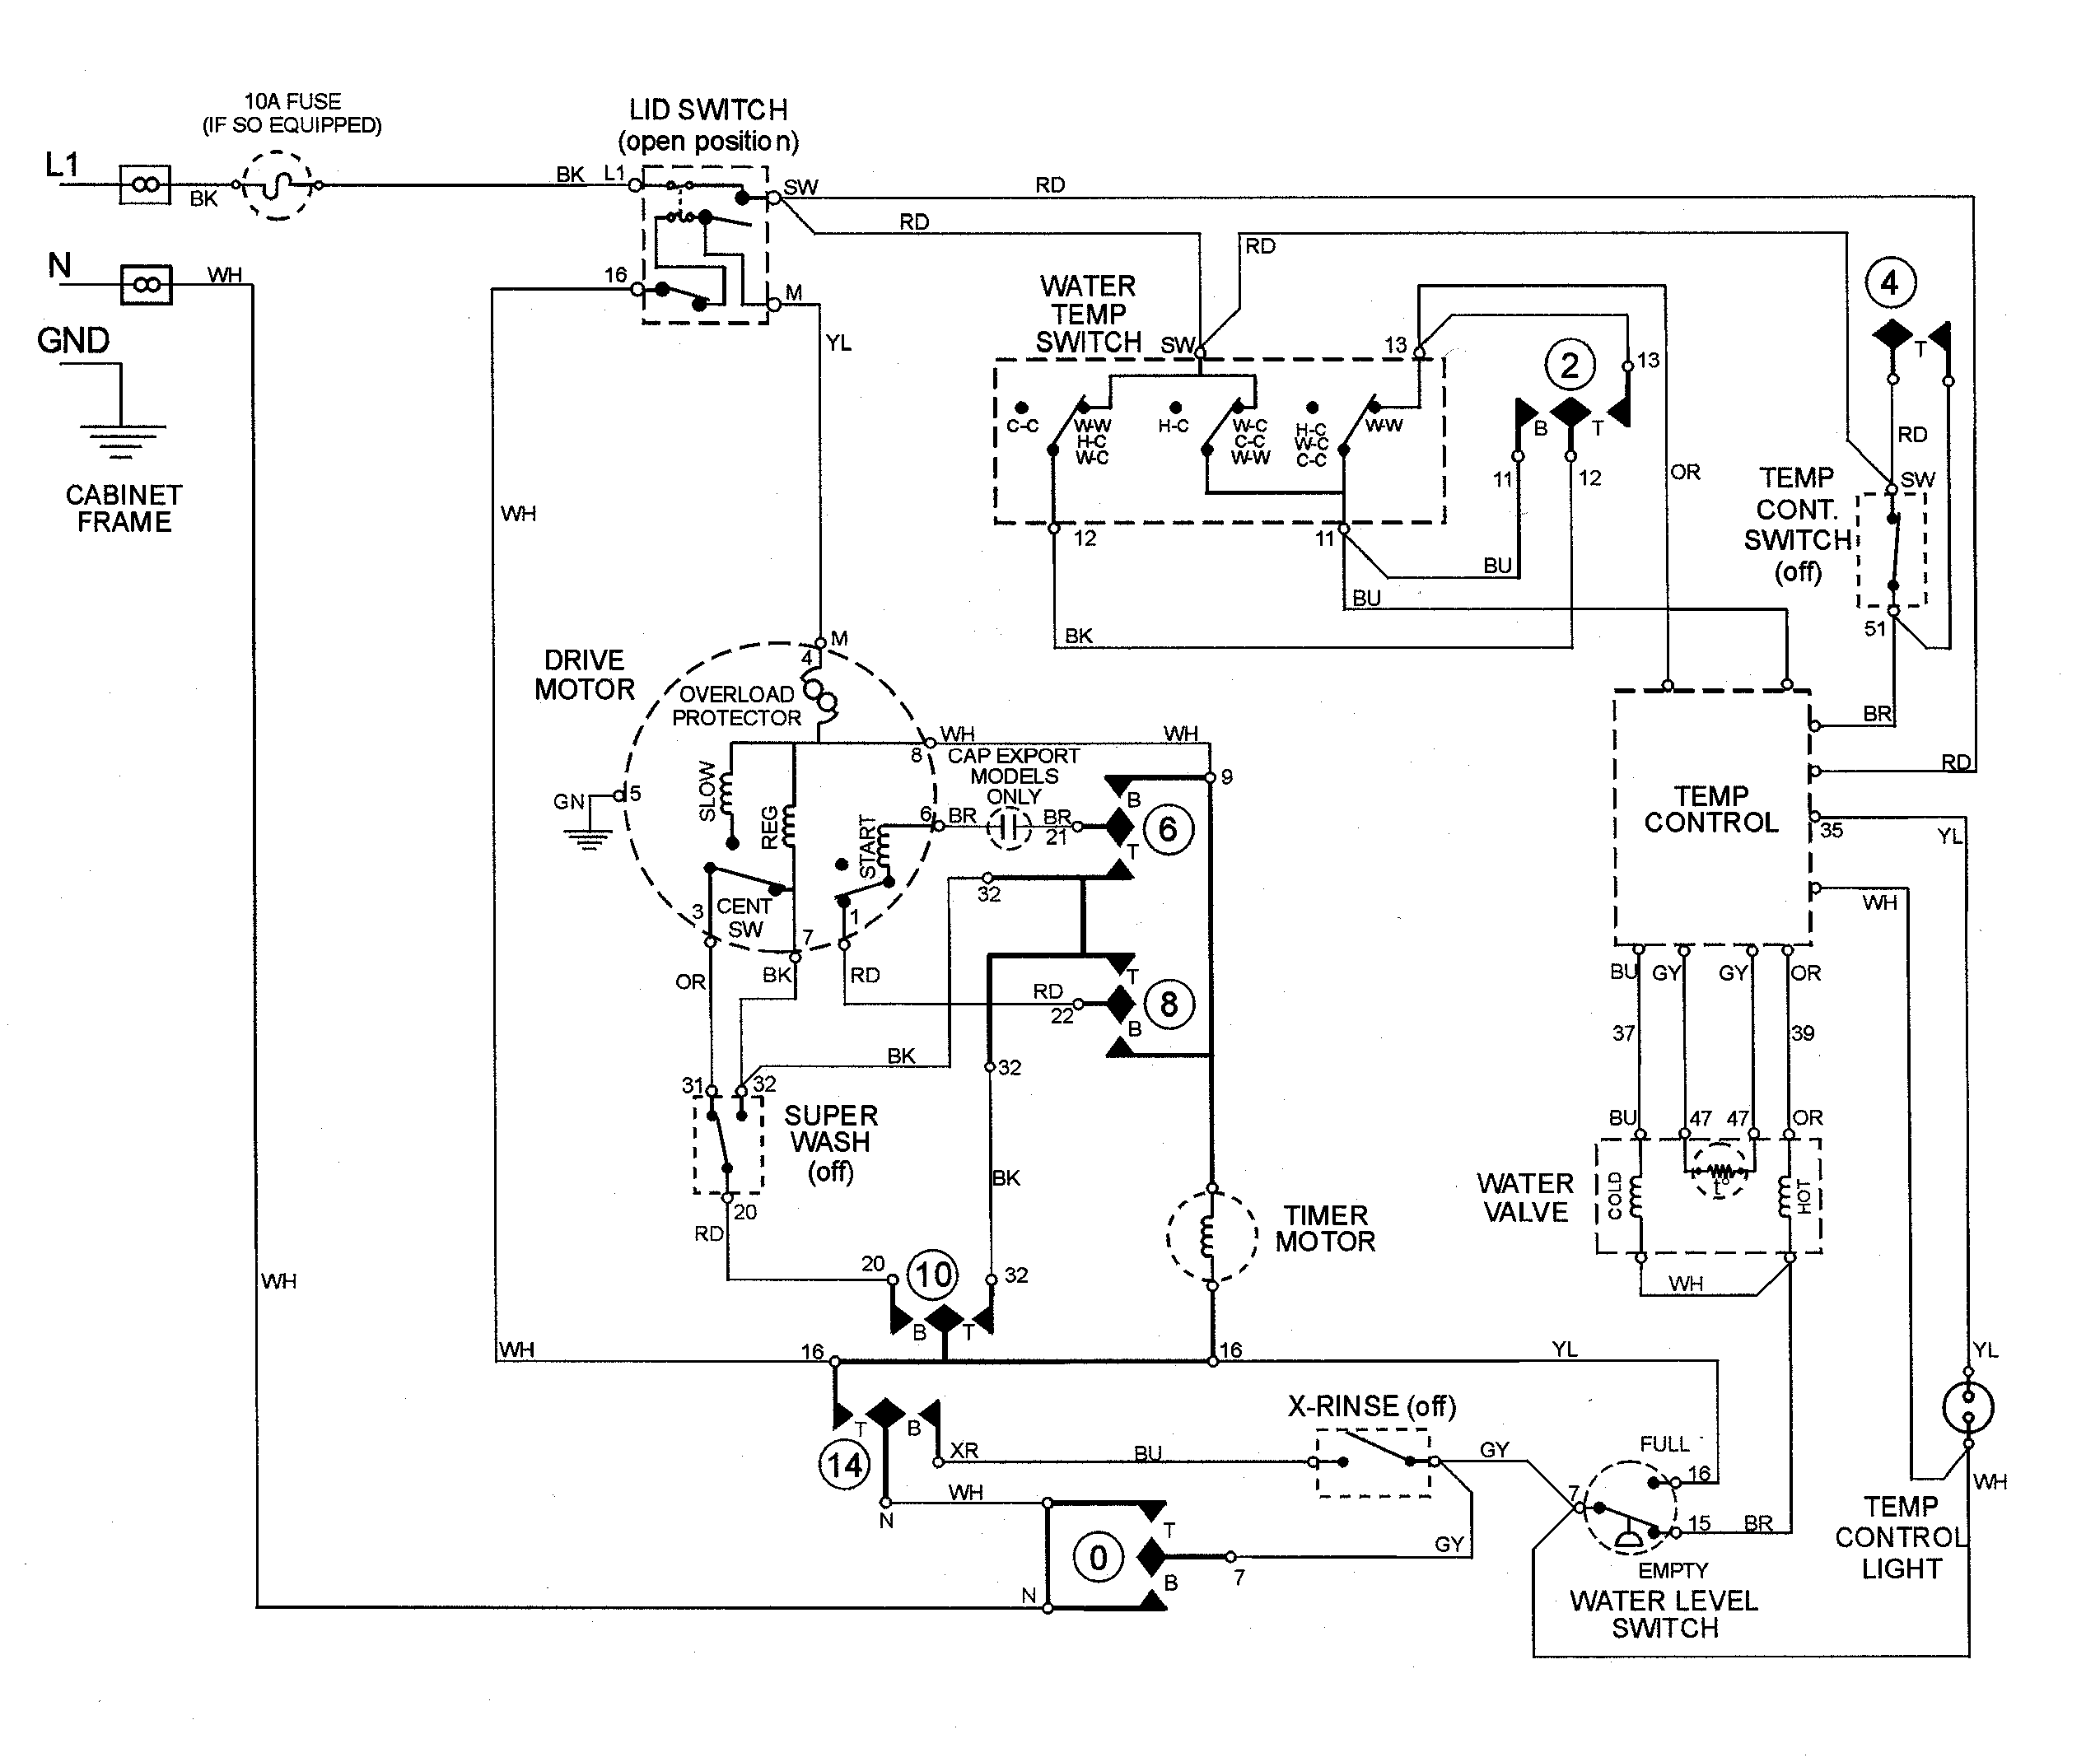 dbfe84c1294a289a6a6d42ba64109ee4 ge washing machine motor wiring diagram, ge, wiring diagram and clothes washer motor wiring diagram at soozxer.org